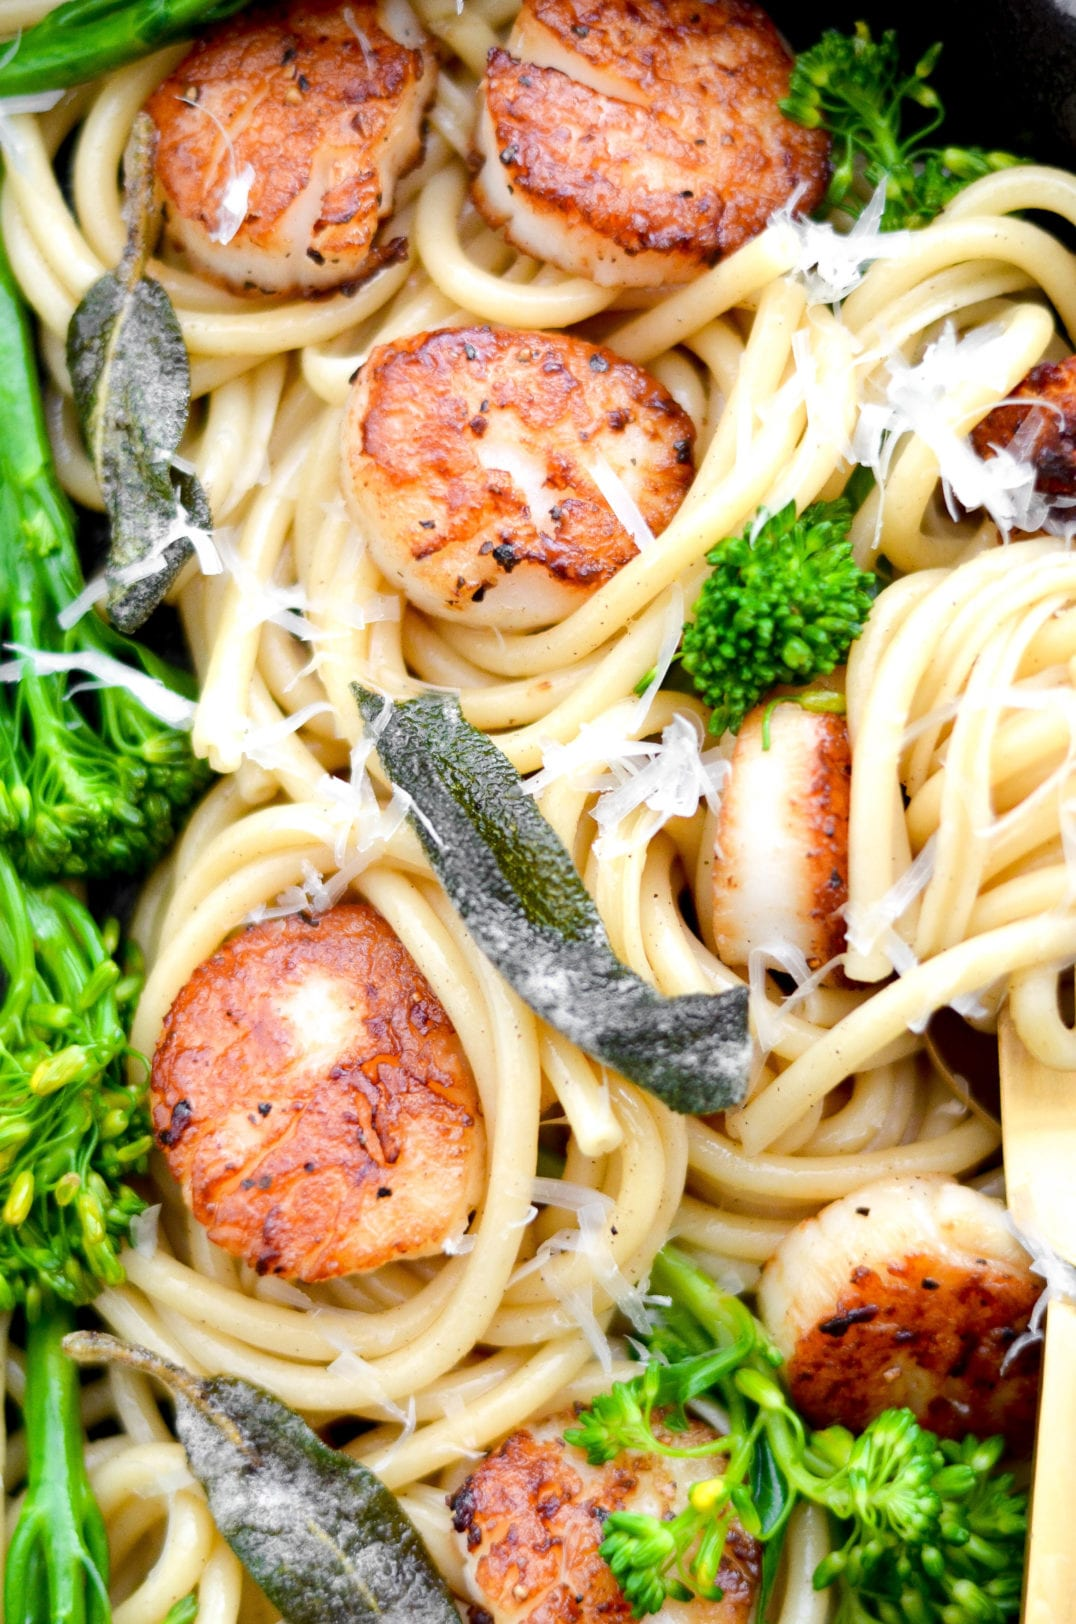 Brown Butter Bucatini With Scallops and Broccolini